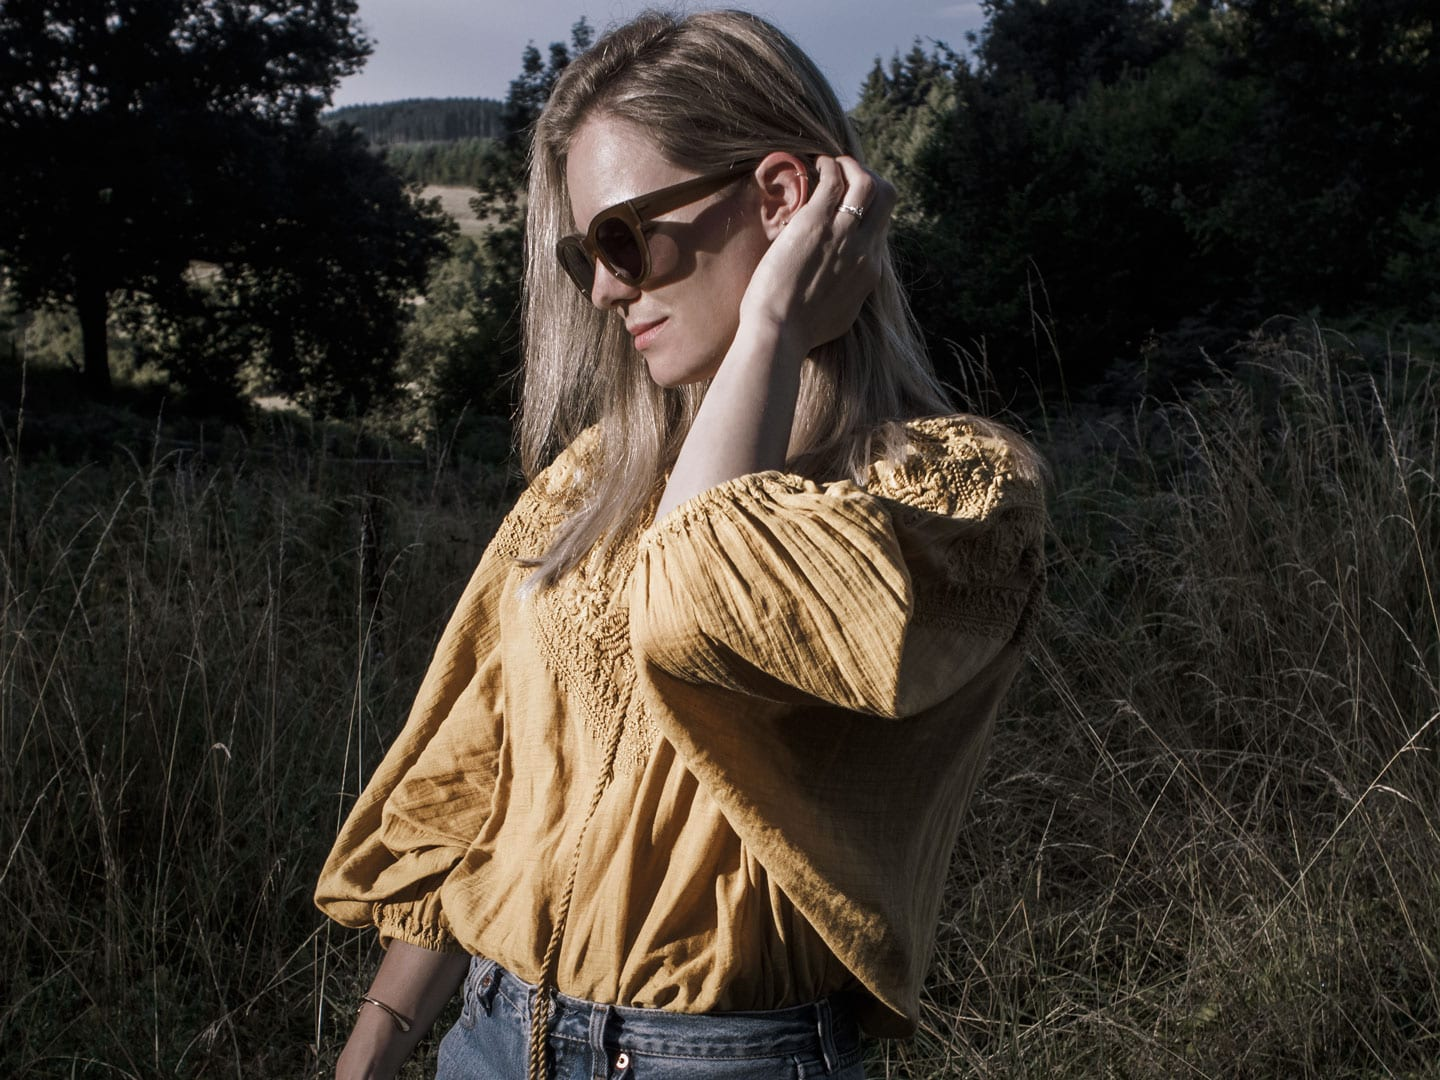 Photo of woman wearing yellow boho peasant top & retro sunglasses in French field